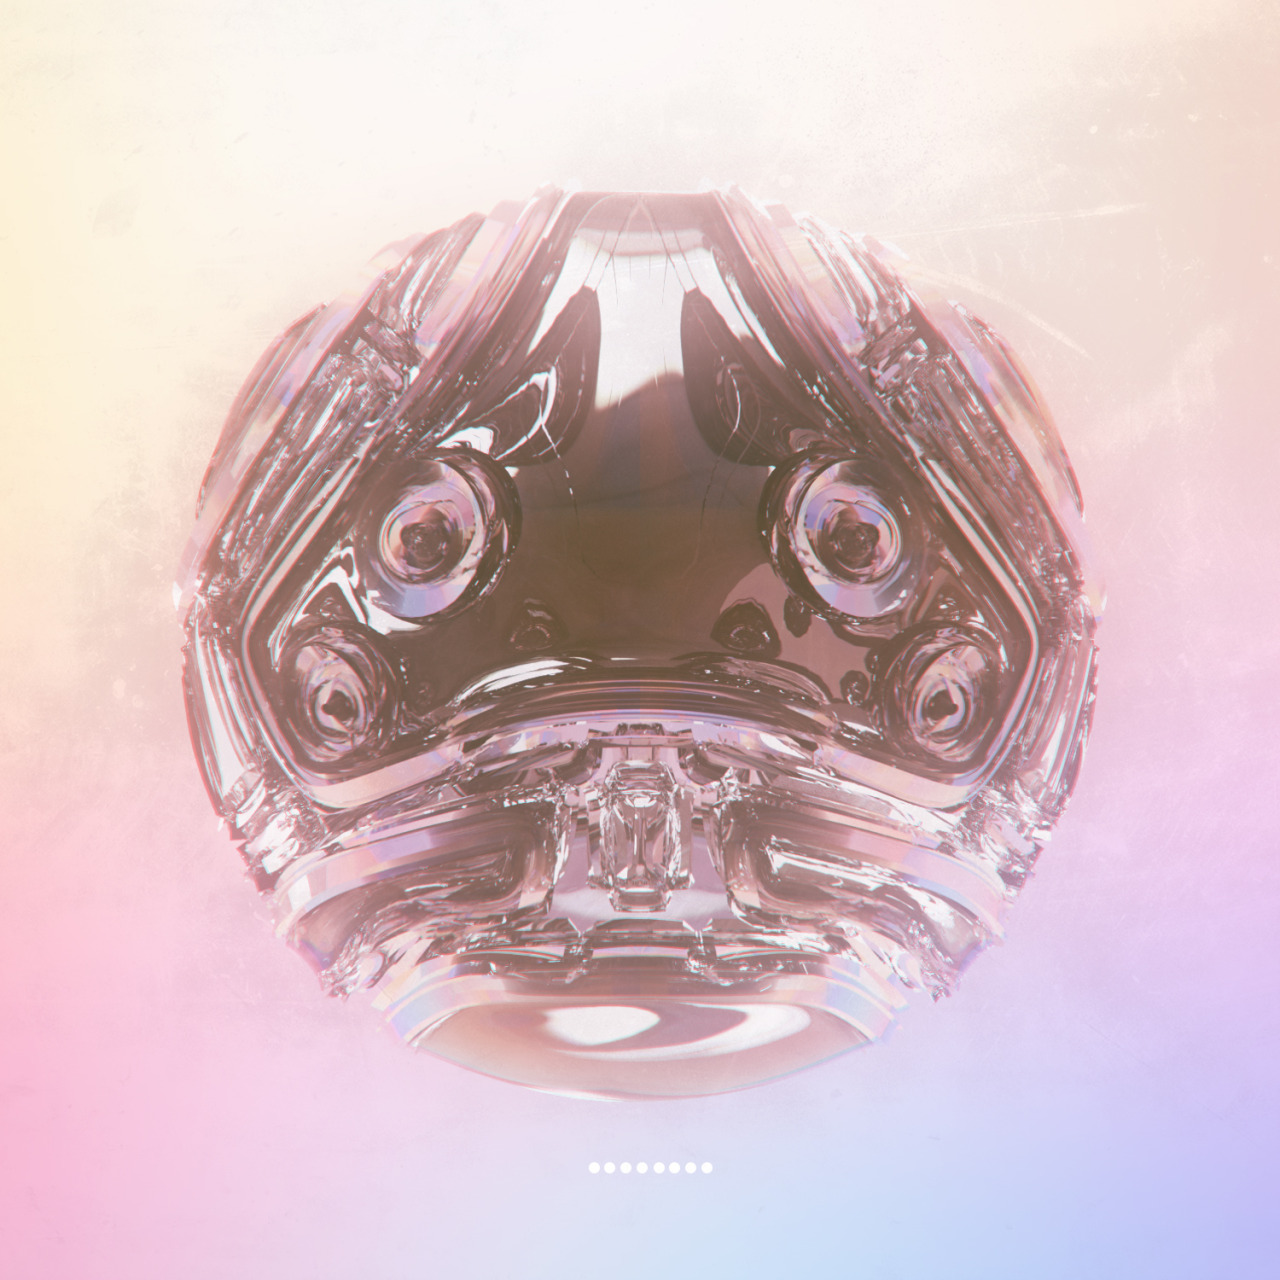 beeple_24_SHRIMPY SKILL